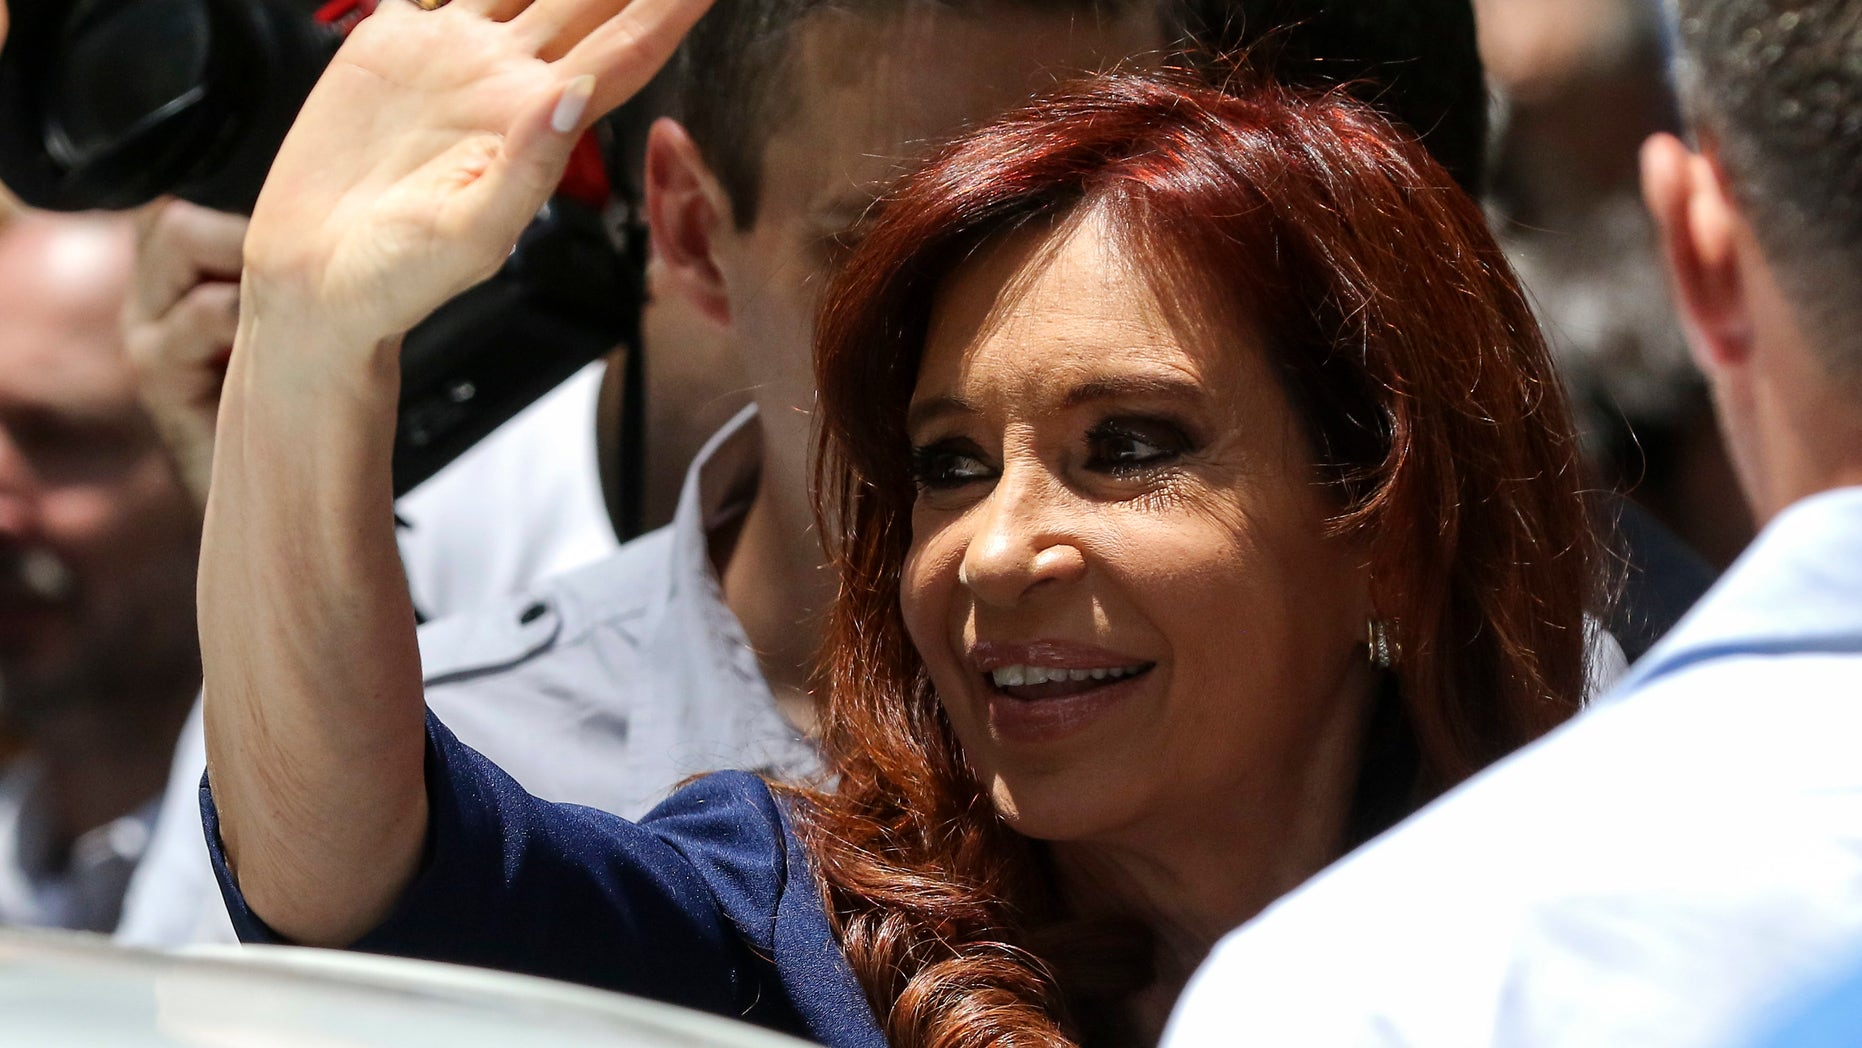 Argentina's former President Cristina Fernandez in Buenos Aires, Argentina, Tuesday, Nov. 29, 2016.